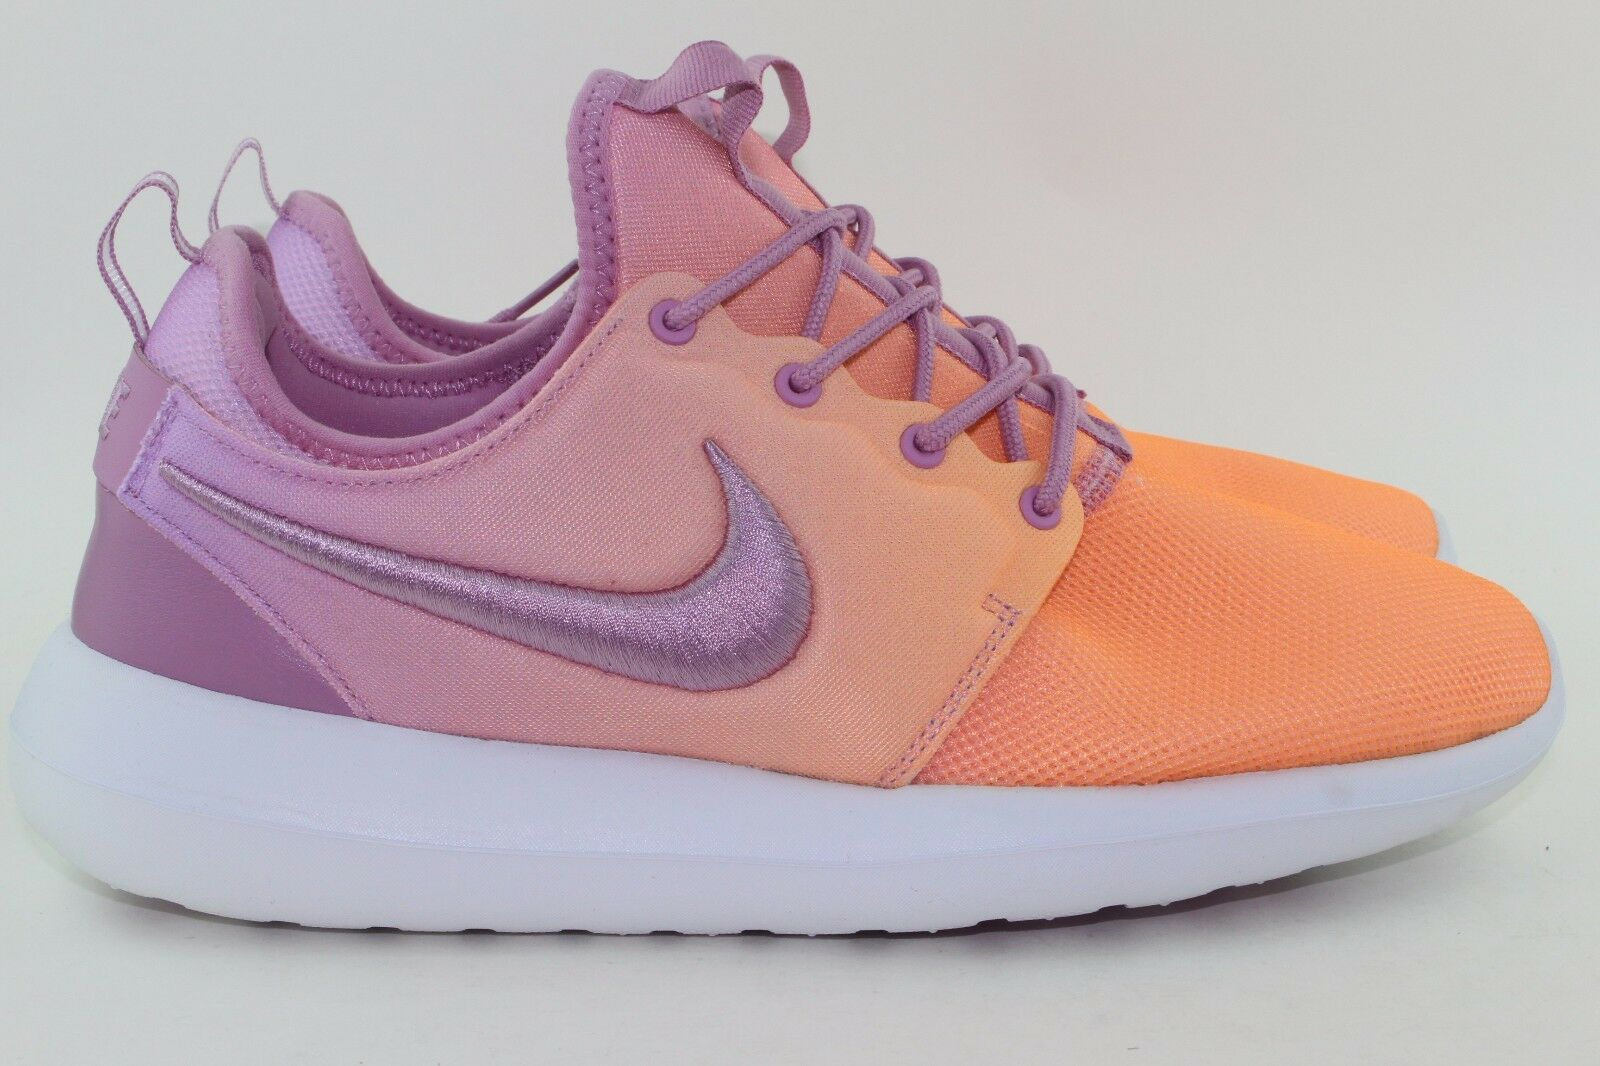 ROSHE TWO BR WOMAN Dimensione 10.5 NEW SUNSET GLOW NEW RARE AUTHENTIC LIGHTWEIGHT